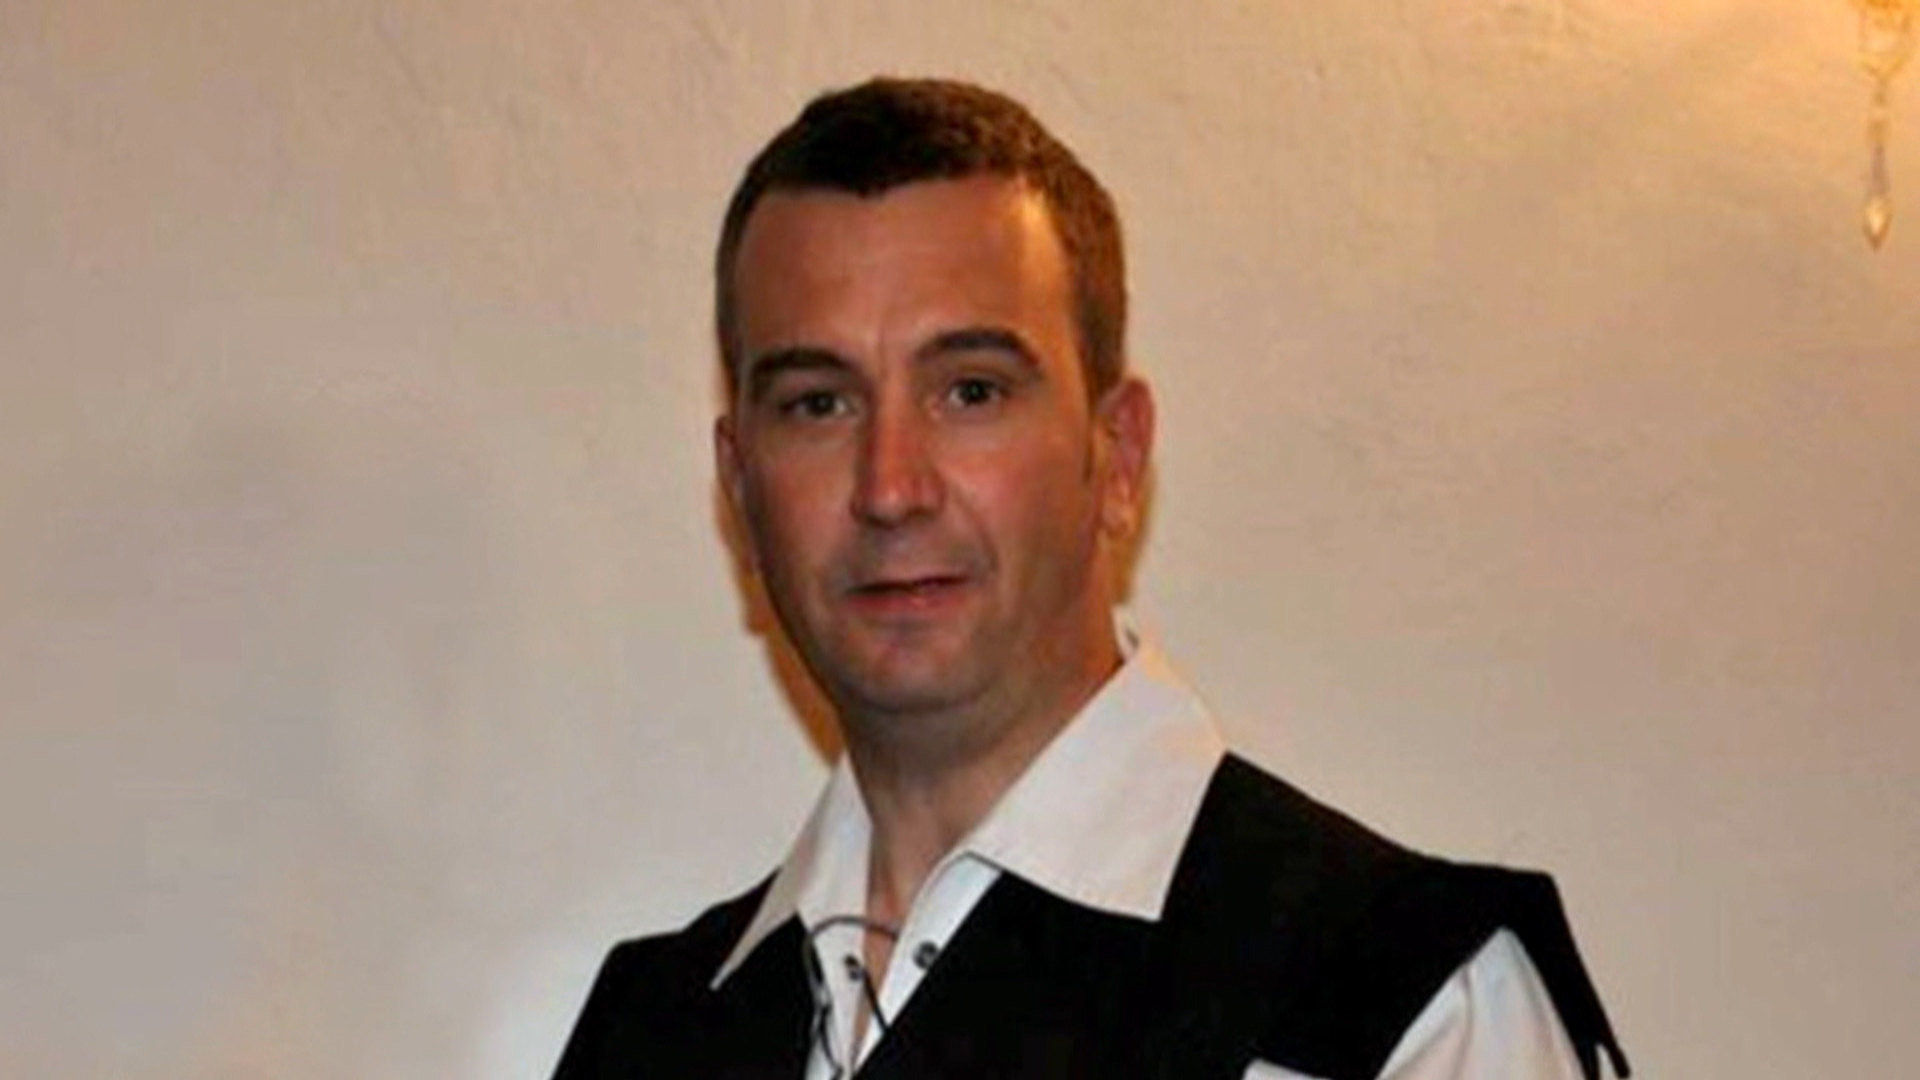 Aid Groups David Haines Worked for Express 'Sadness and Outrage'